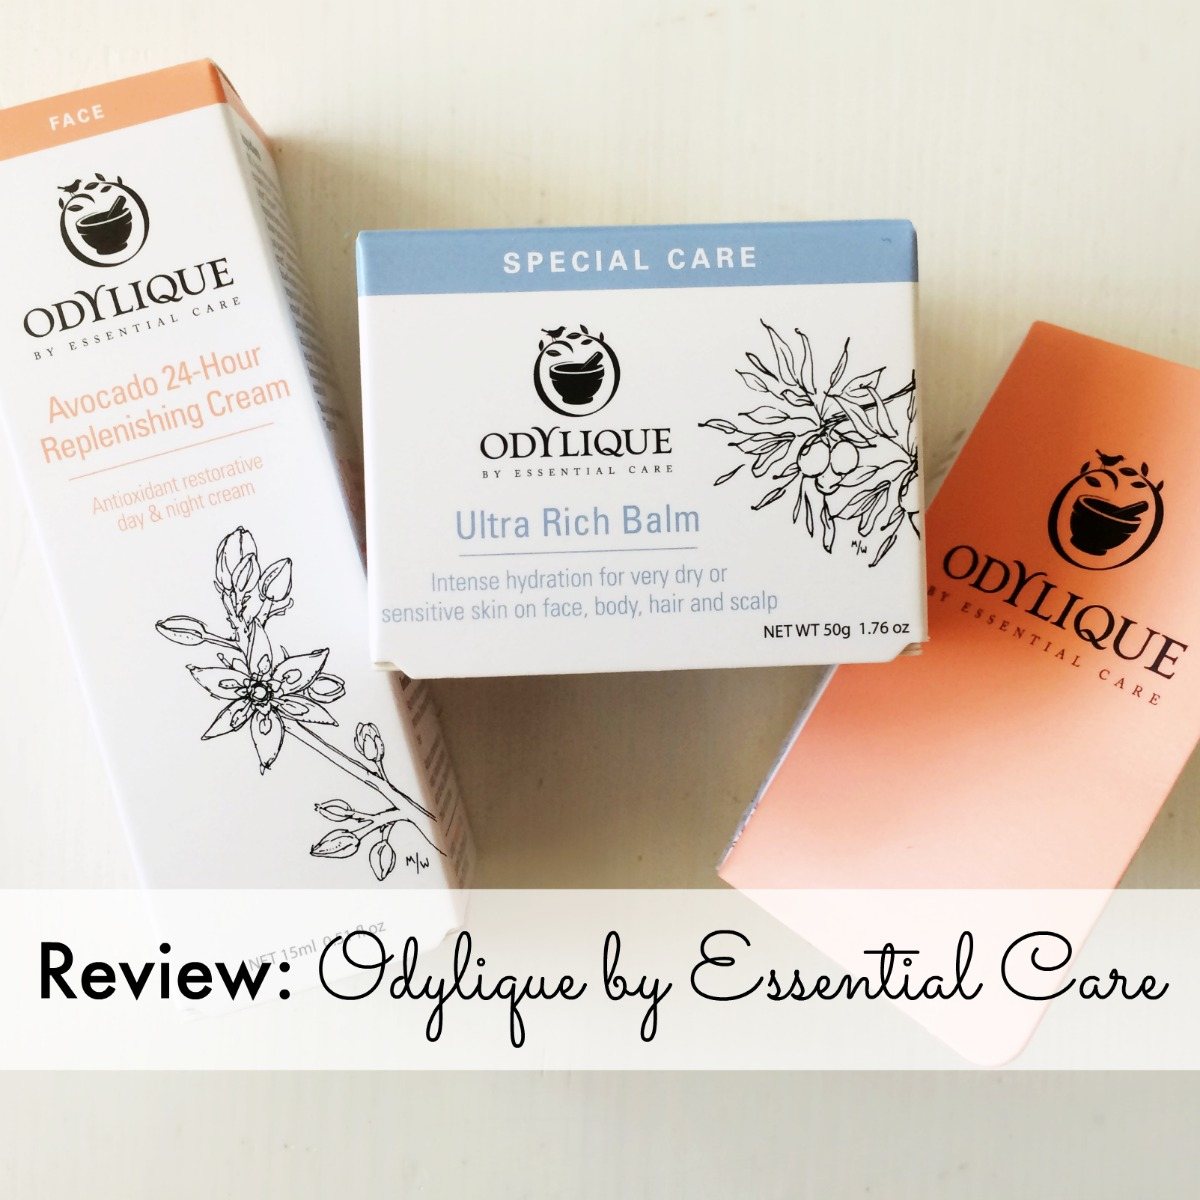 Review: Odylique by Essential Care